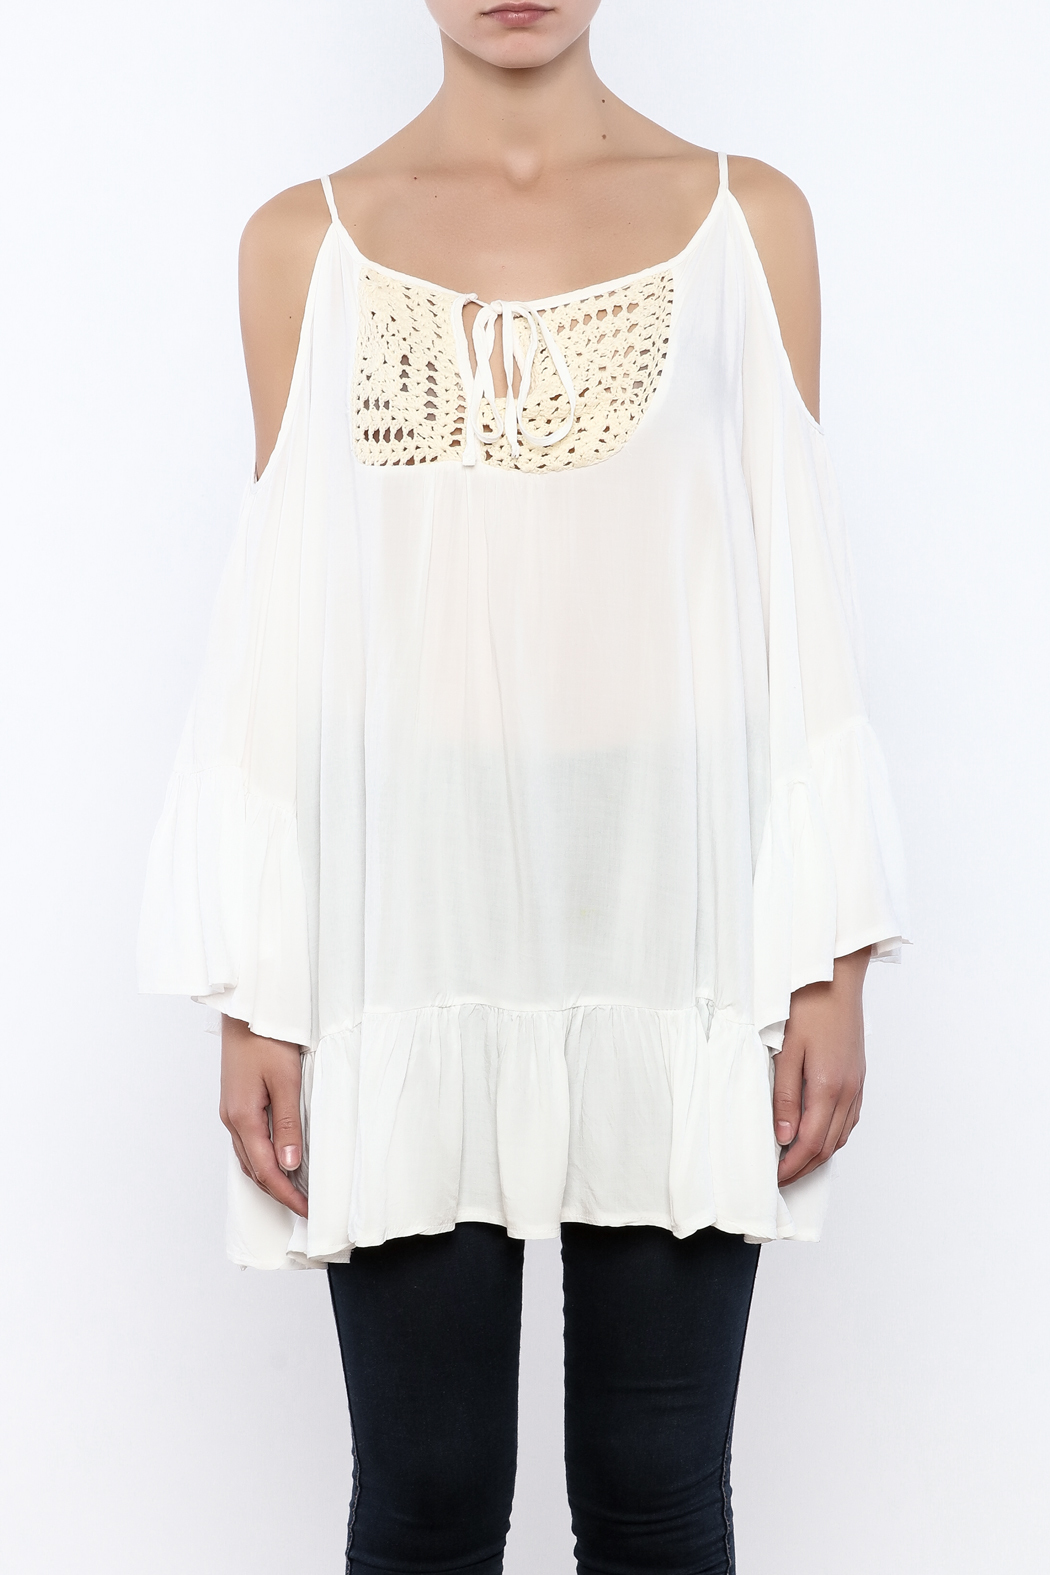 Gypsy Junkies Boho Crochet Top - Side Cropped Image